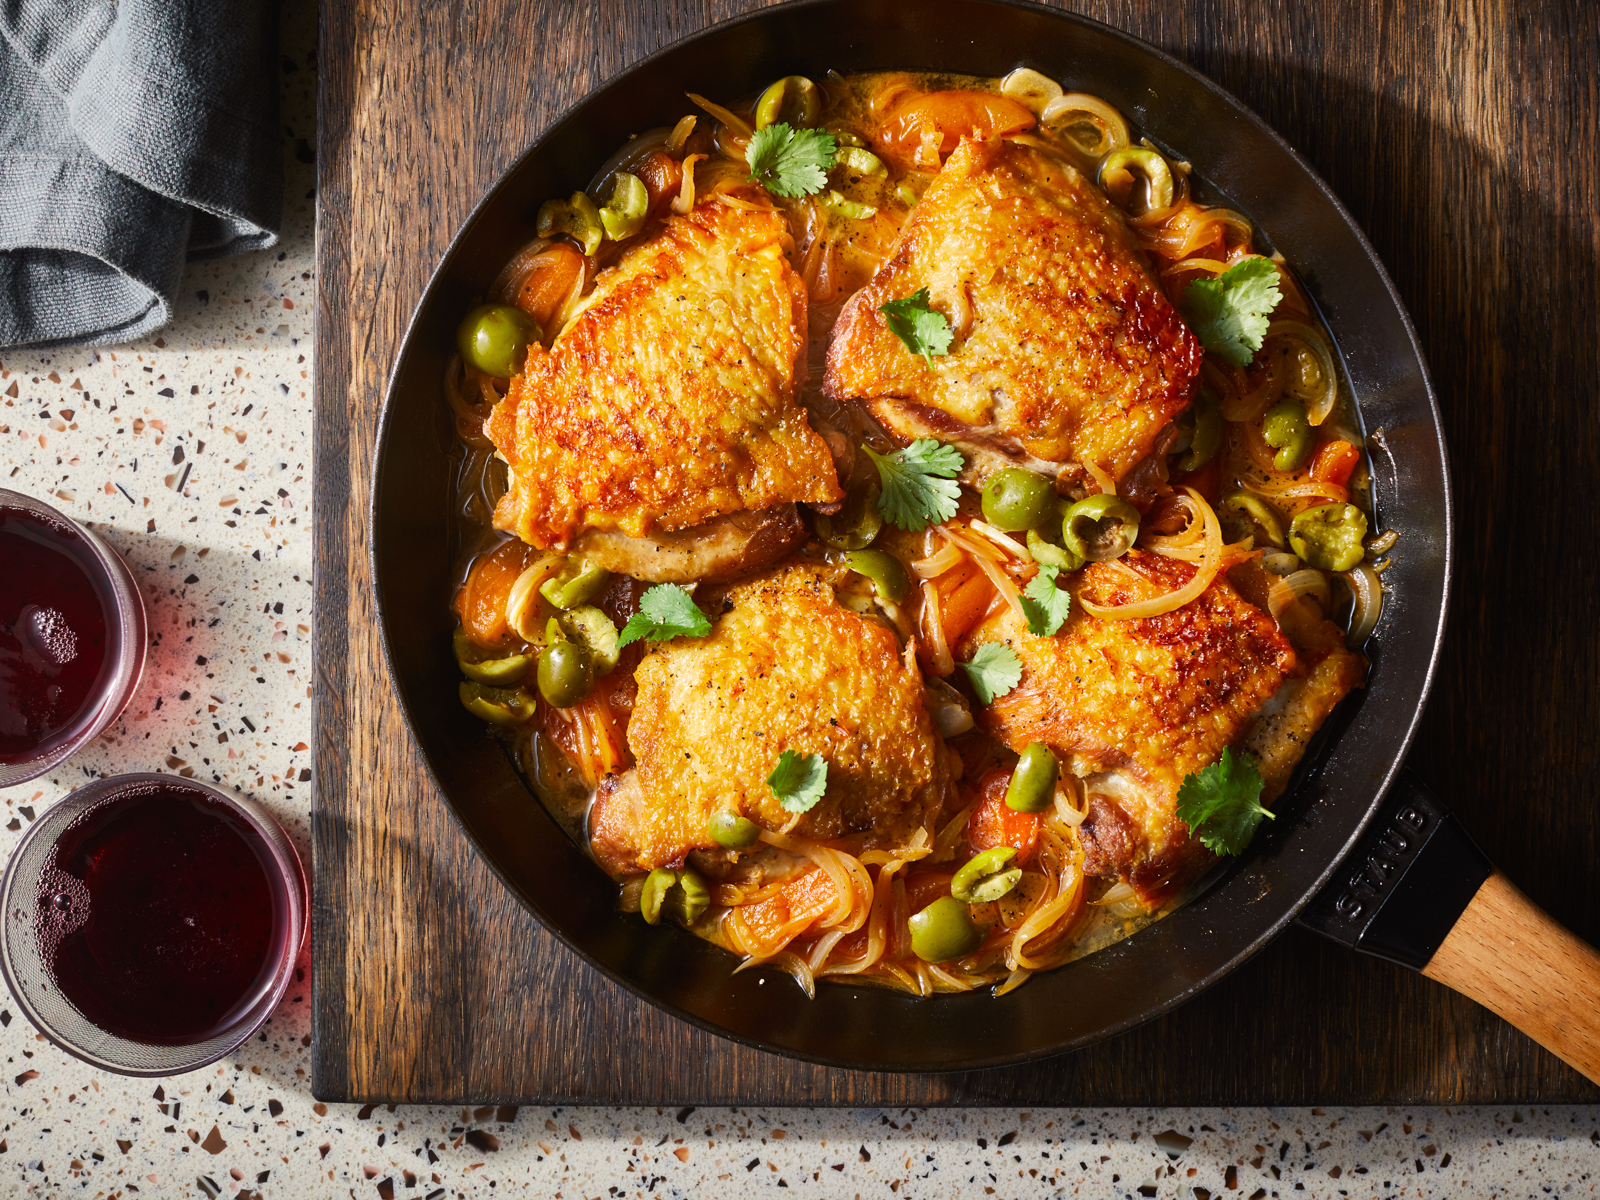 Braised Chicken Thighs with Olives and Apricots